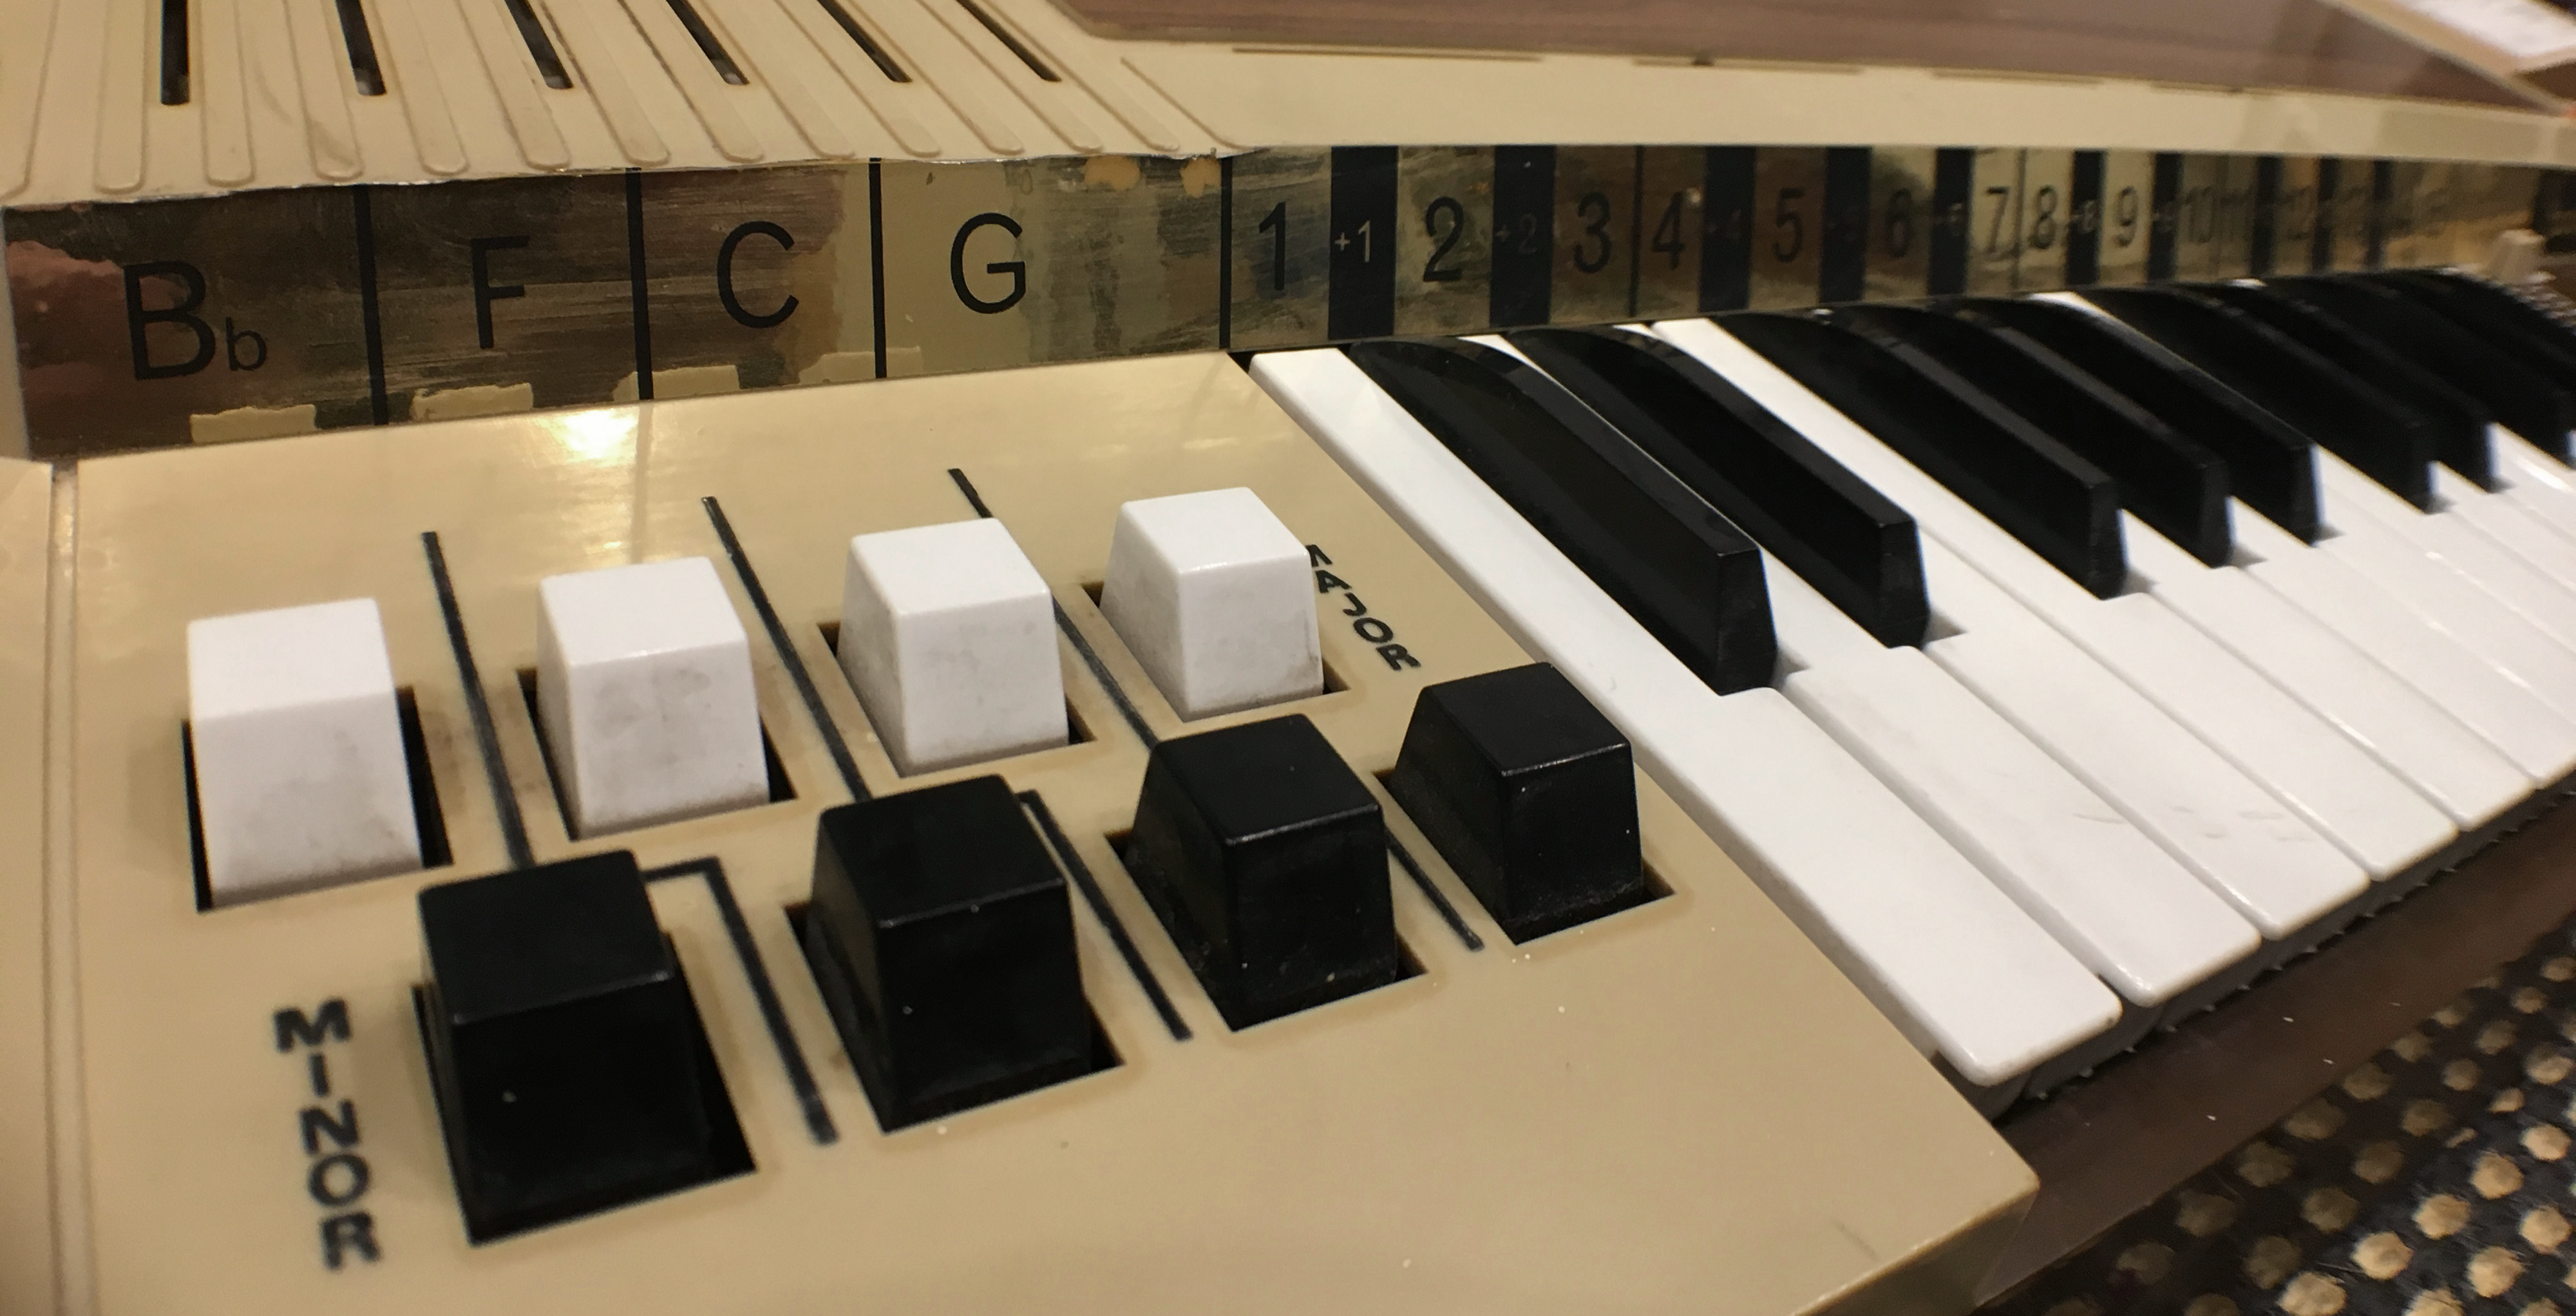 Chord Organ: The easiest way to get simple chords from a